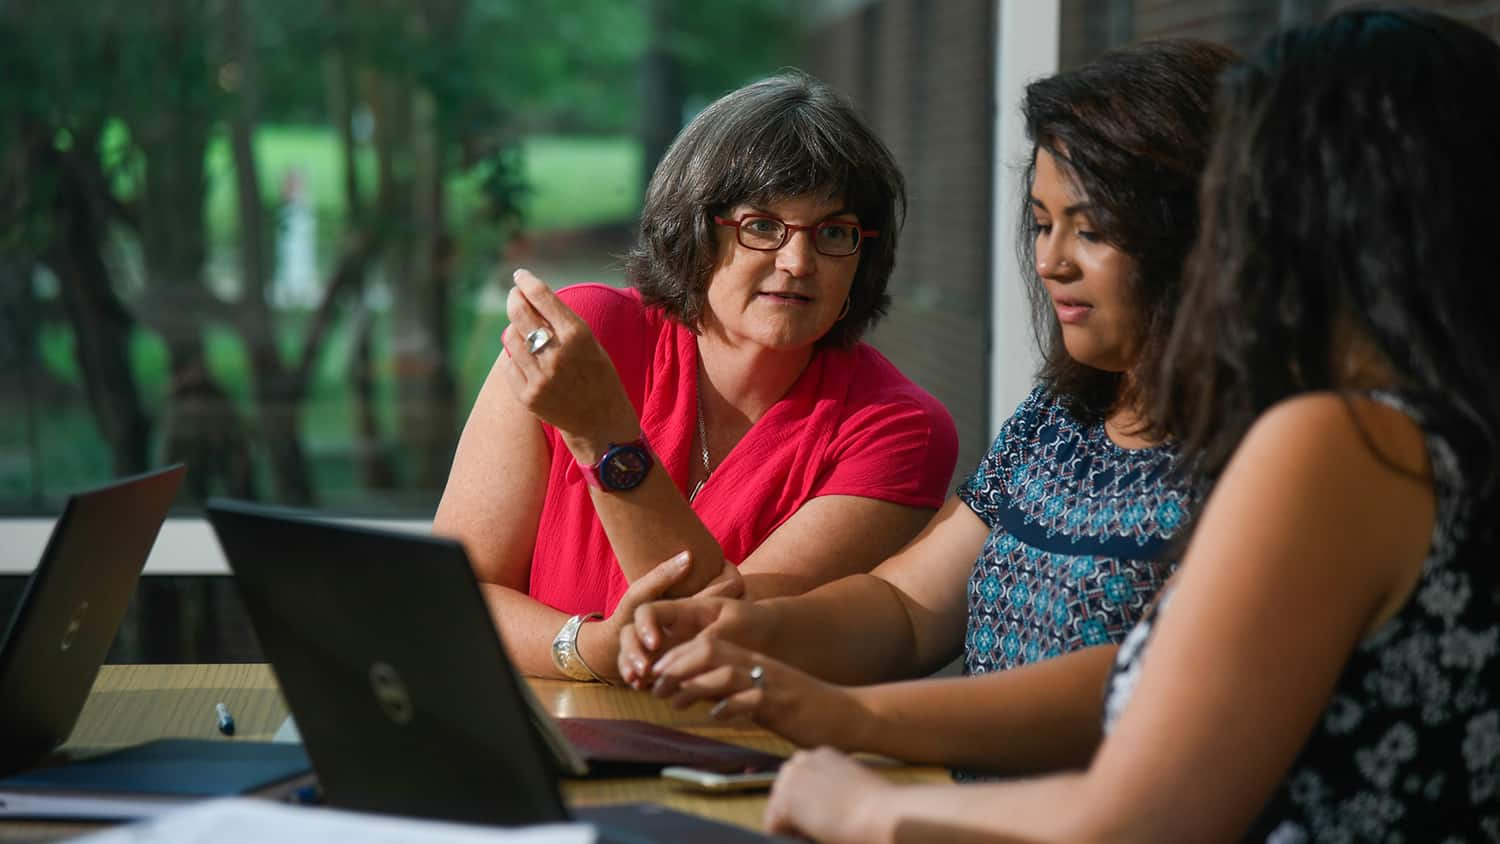 Professor Jane Hoppin speaks with two students sitting at a desk with laptops